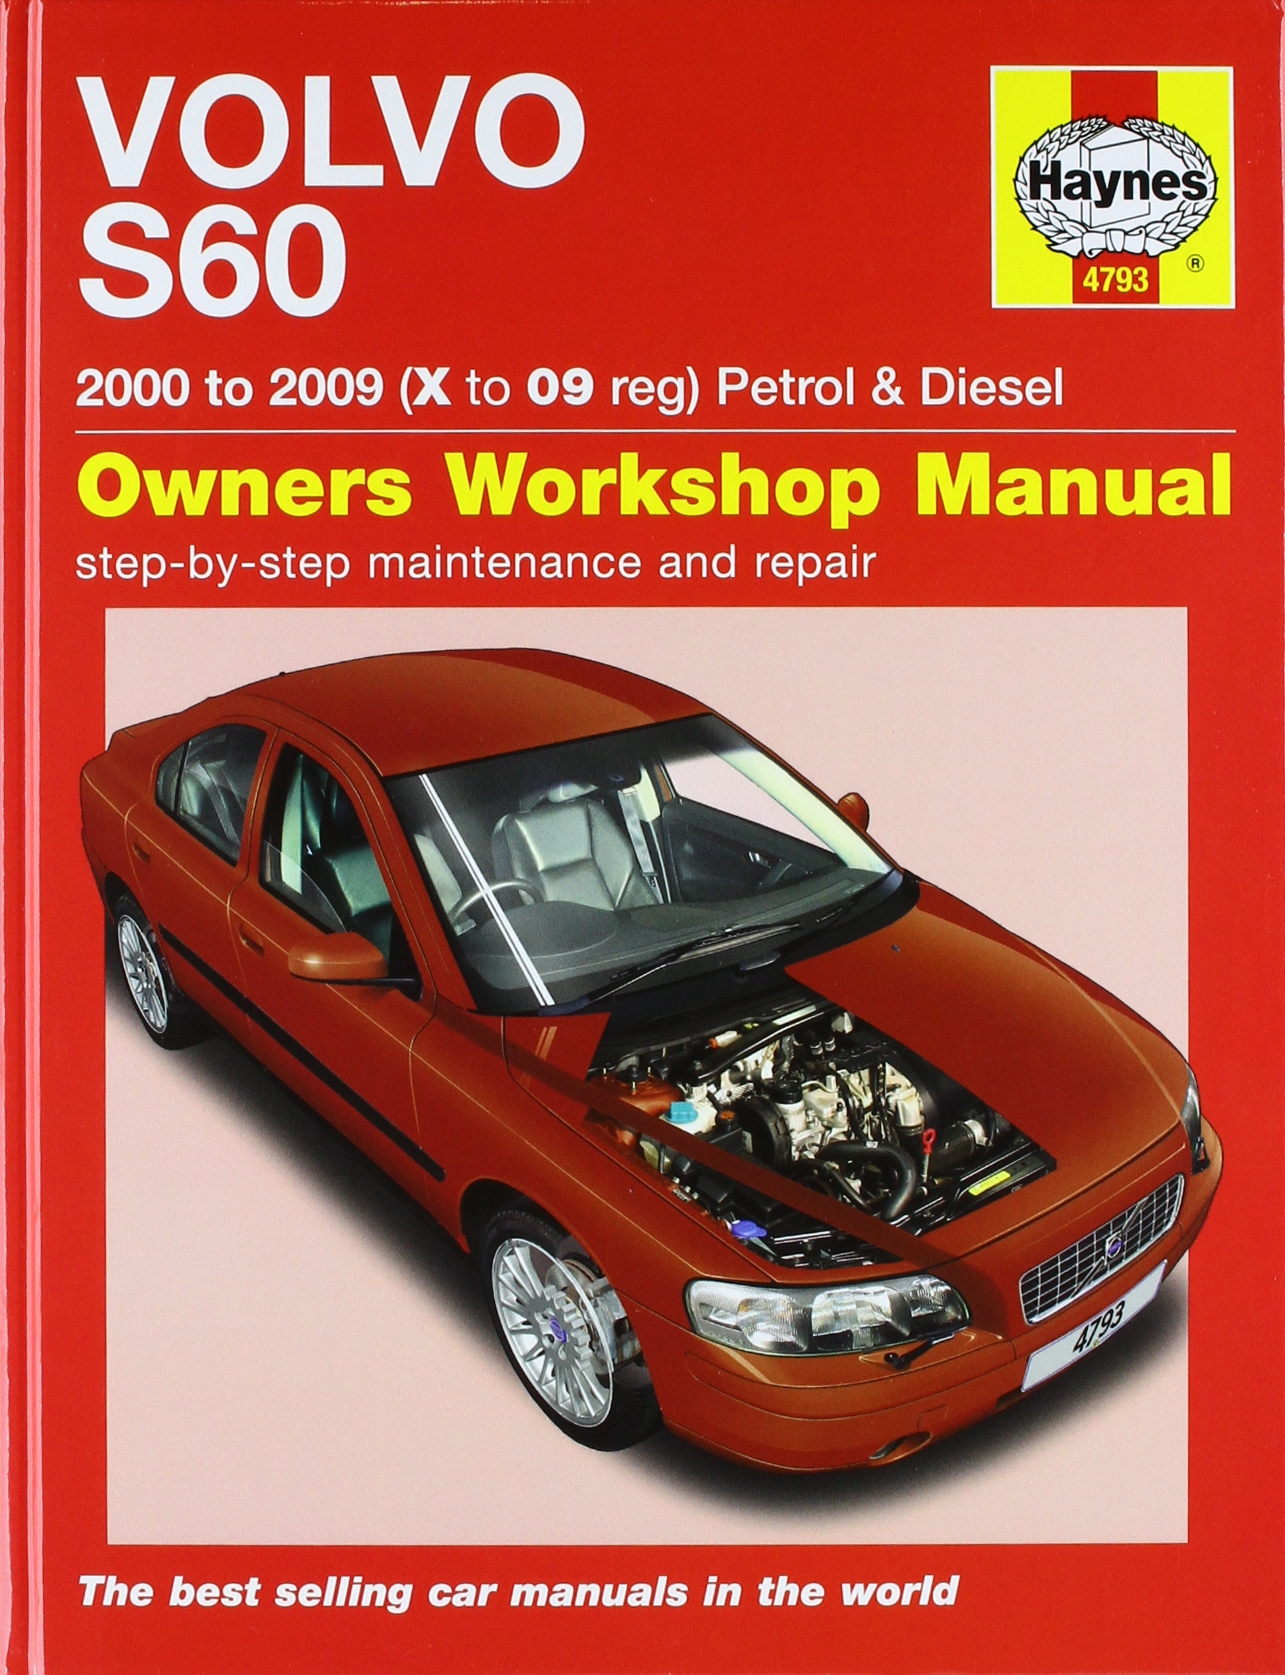 volvo s60 petrol and diesel service and repair manual 2000 to 2009 rh amazon com 2007 volvo s60 repair manual pdf 2007 volvo s60 repair manual